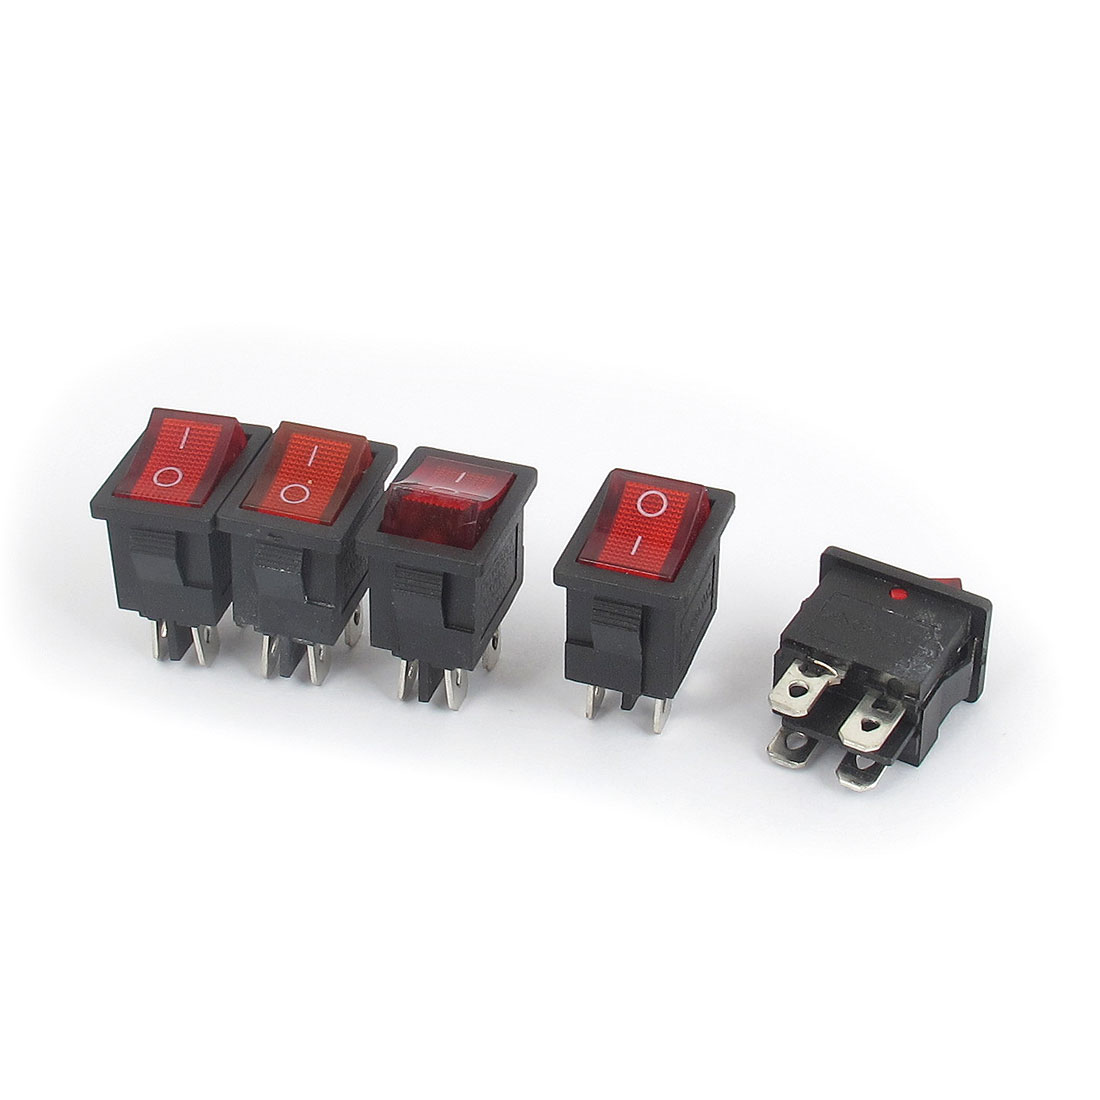 AC 250V/125V 10A/6A DPST ON/OFF 2 Position 4 Terminals Soldering Snap in Type Red Lamp Boat Rocker Switch 5pcs